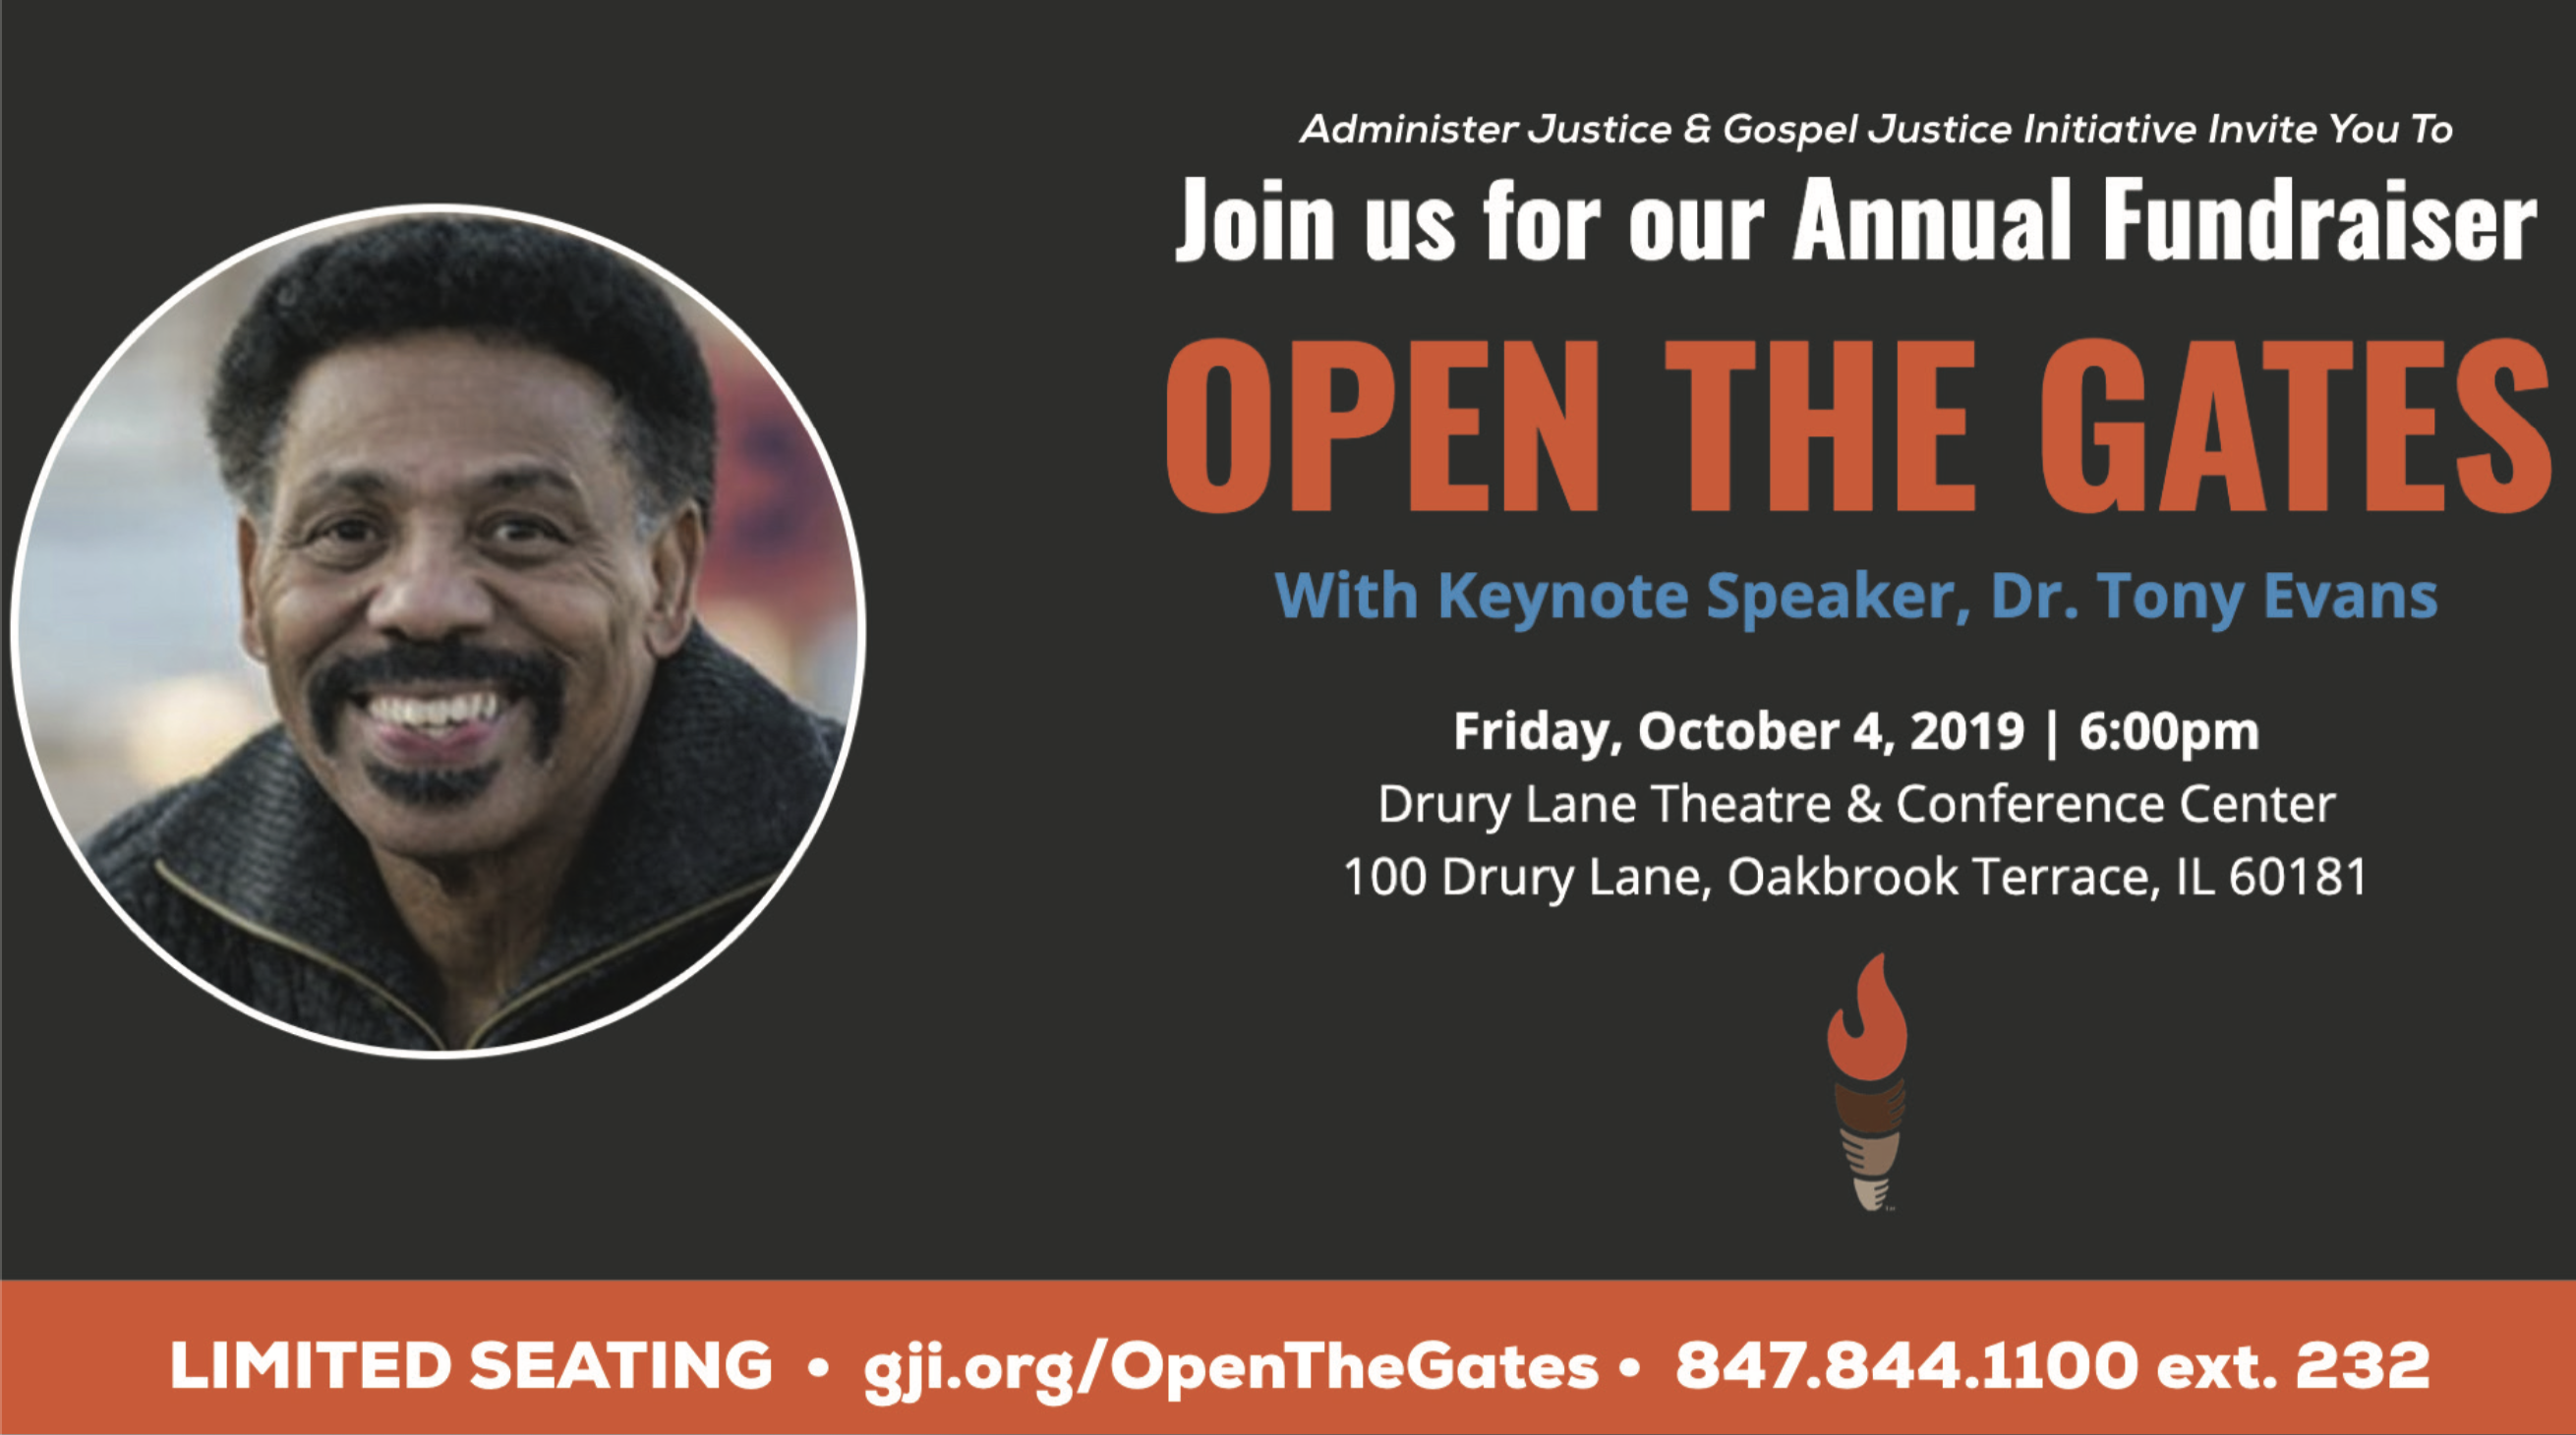 Open the Gates - Gospel Justice Initiative